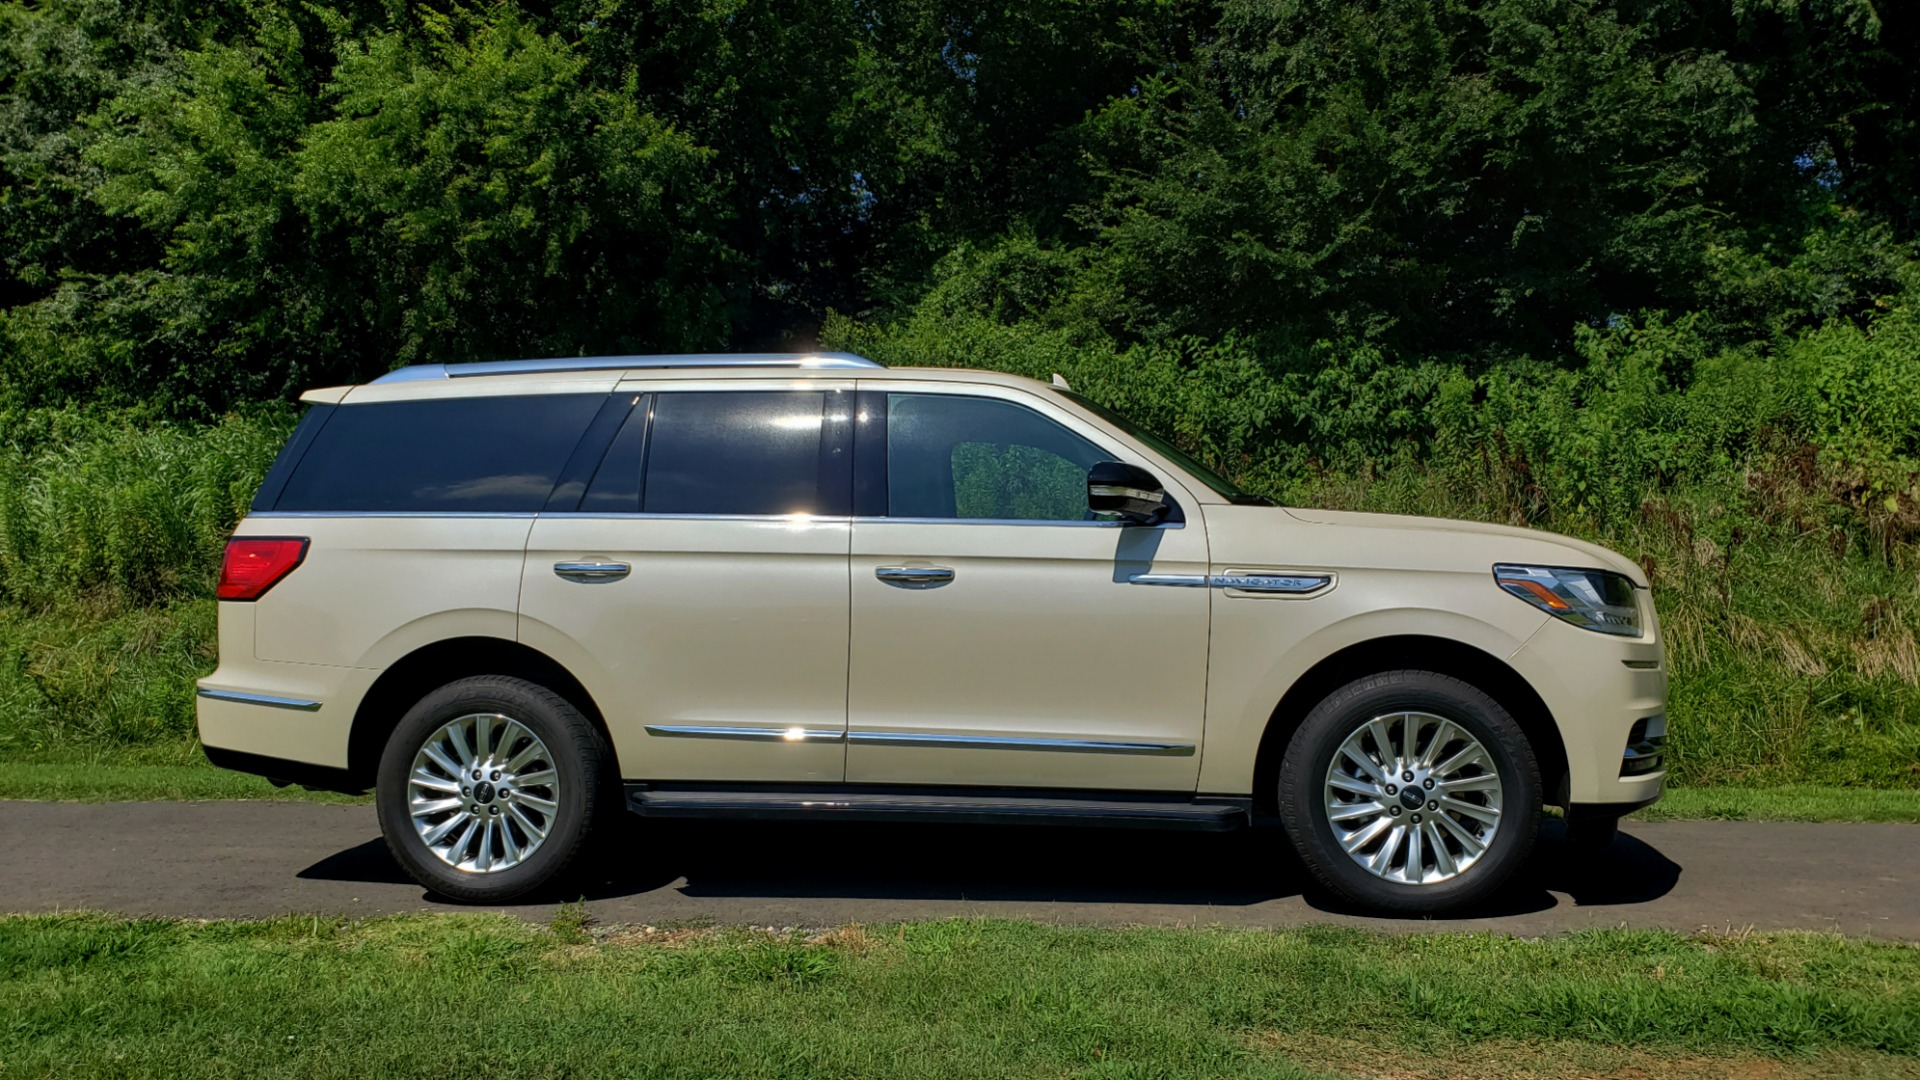 Used 2018 Lincoln NAVIGATOR PREMIERE 4X2 / TWIN-TURBO V6 / NAV / 3-ROW / REARVIEW for sale Sold at Formula Imports in Charlotte NC 28227 6